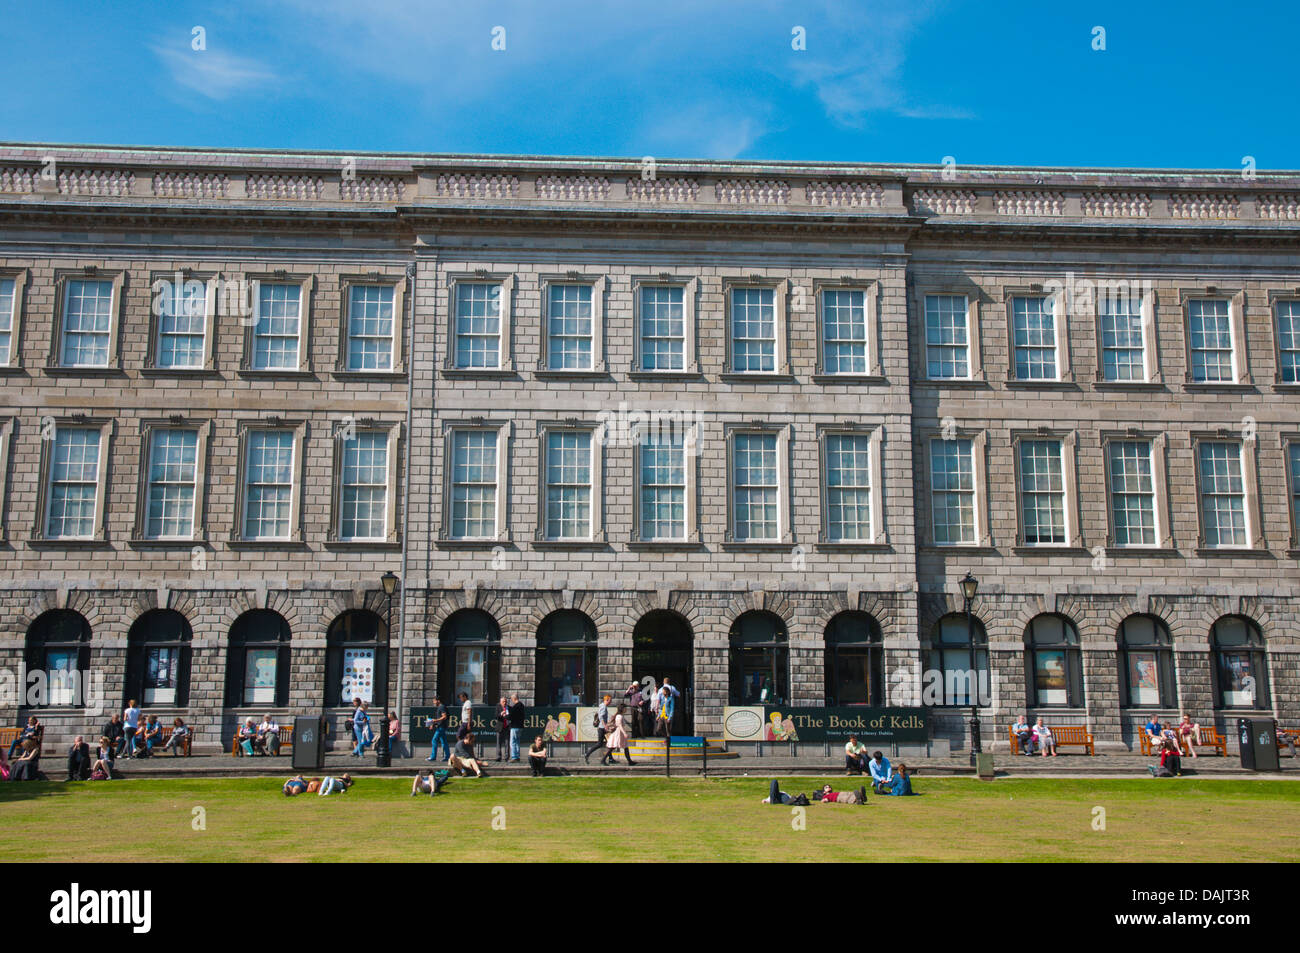 Old Library building containing Book of Kells the Fellows square Trinity college university area central Dublin - Stock Image